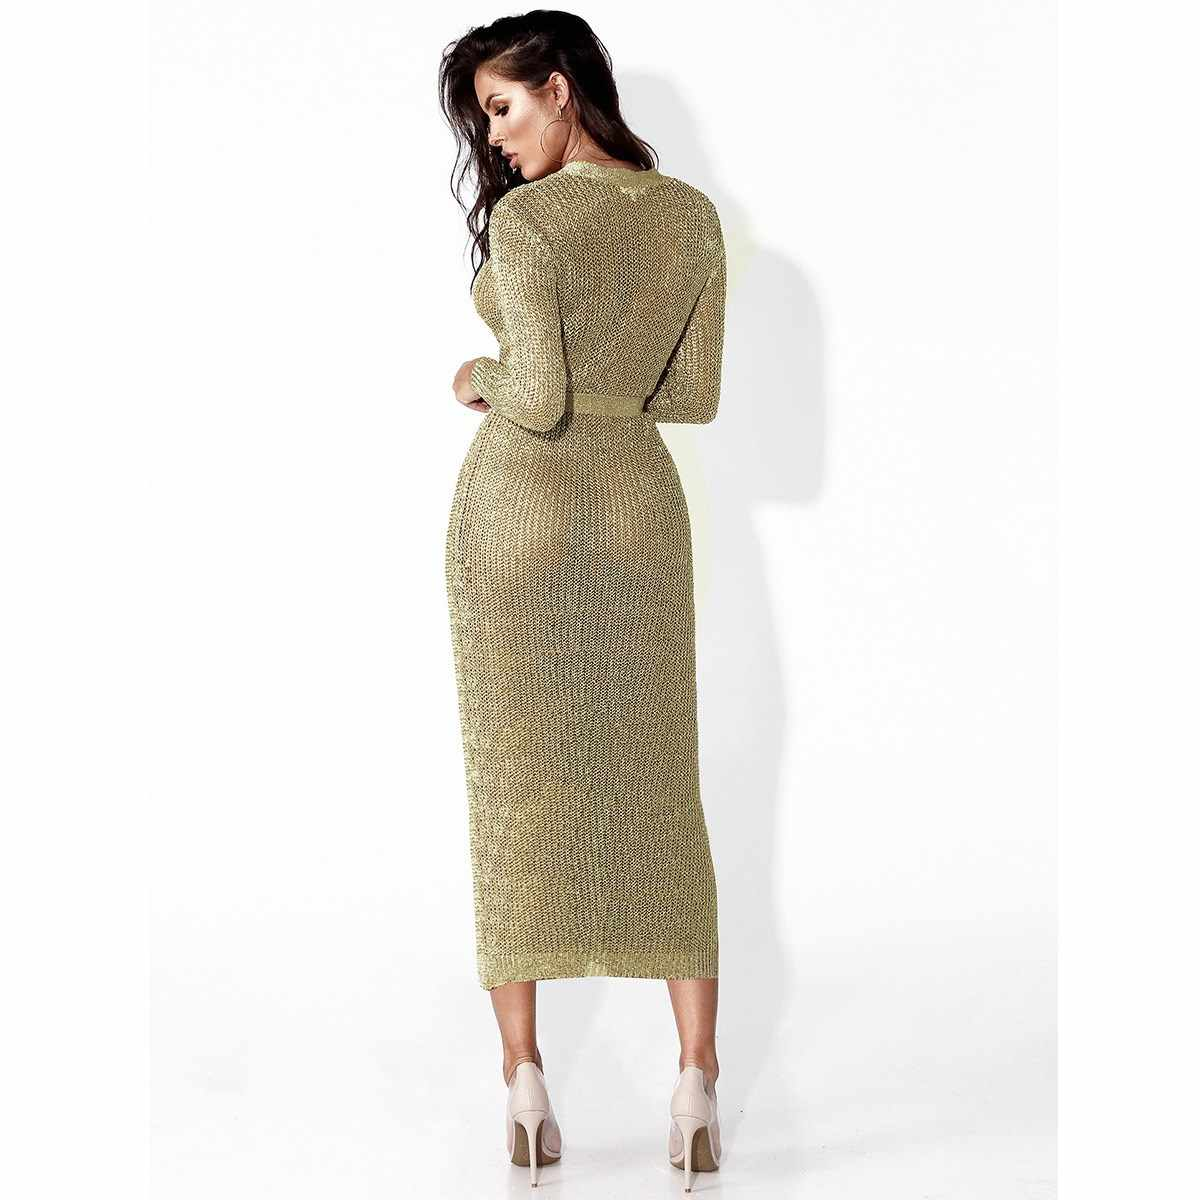 f88cadc24baa ... Women Sexy Club Rose Gold Knitted Sweater Dress Autumn Winter Long  Sleeve V-Neck Cardigan ...